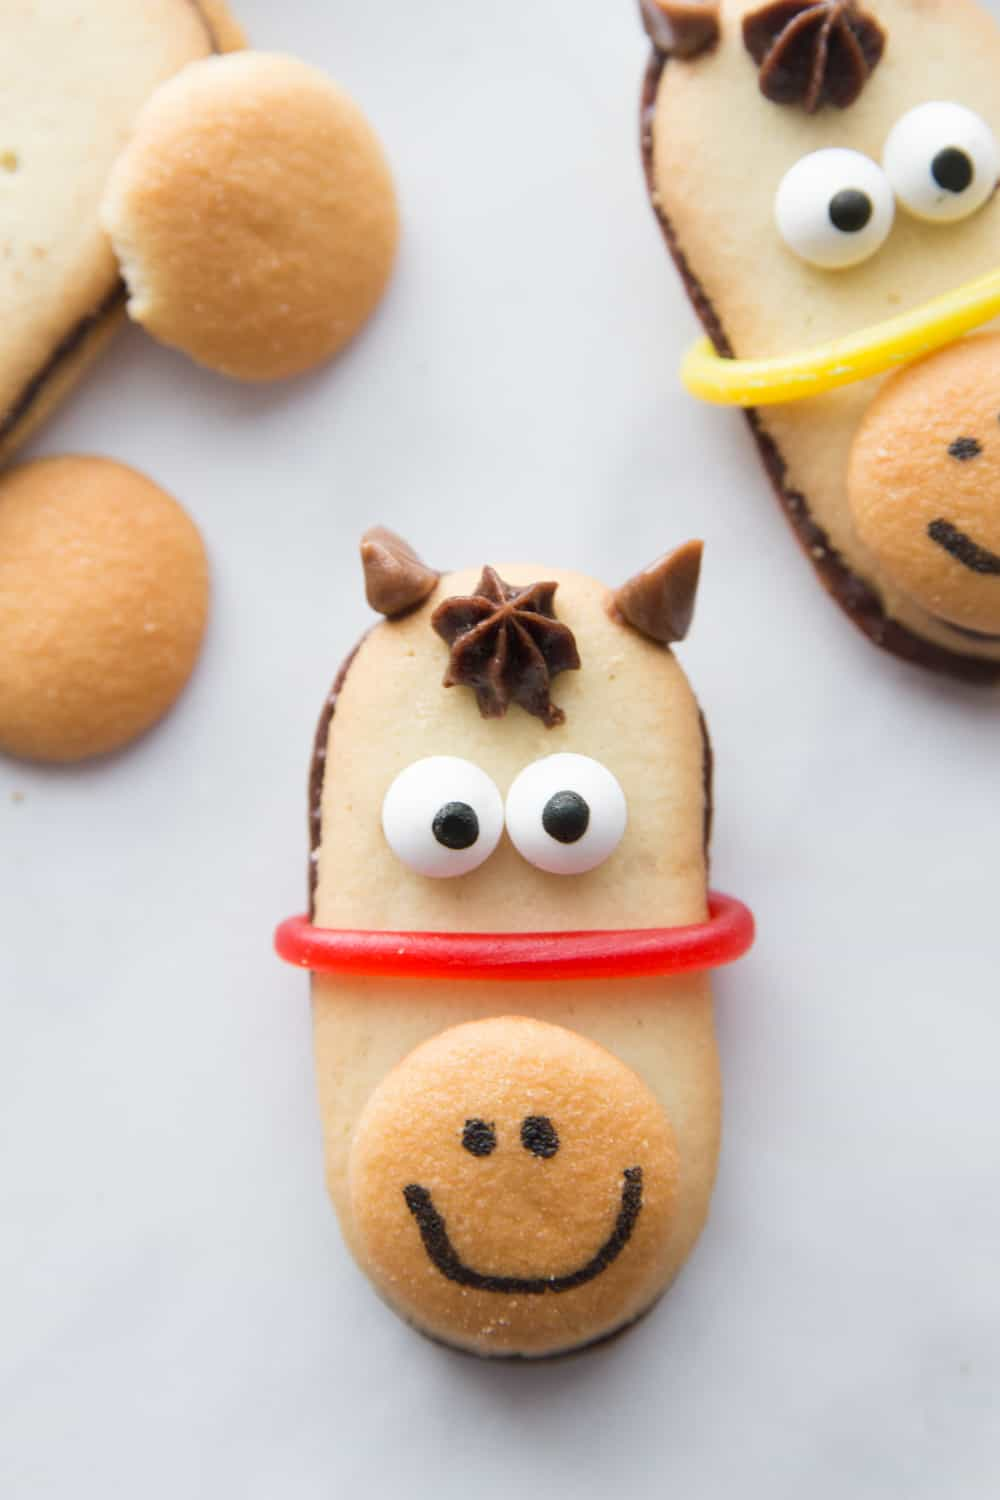 No Bake Horse Cookies are perfect for a Kentucky derby party, triple crown races, or horse themed parties! These horse cookies are the best no bake cookies! #horsecookies #nobakecookies #kentuckyderbyparty www.savoryexperiments.com